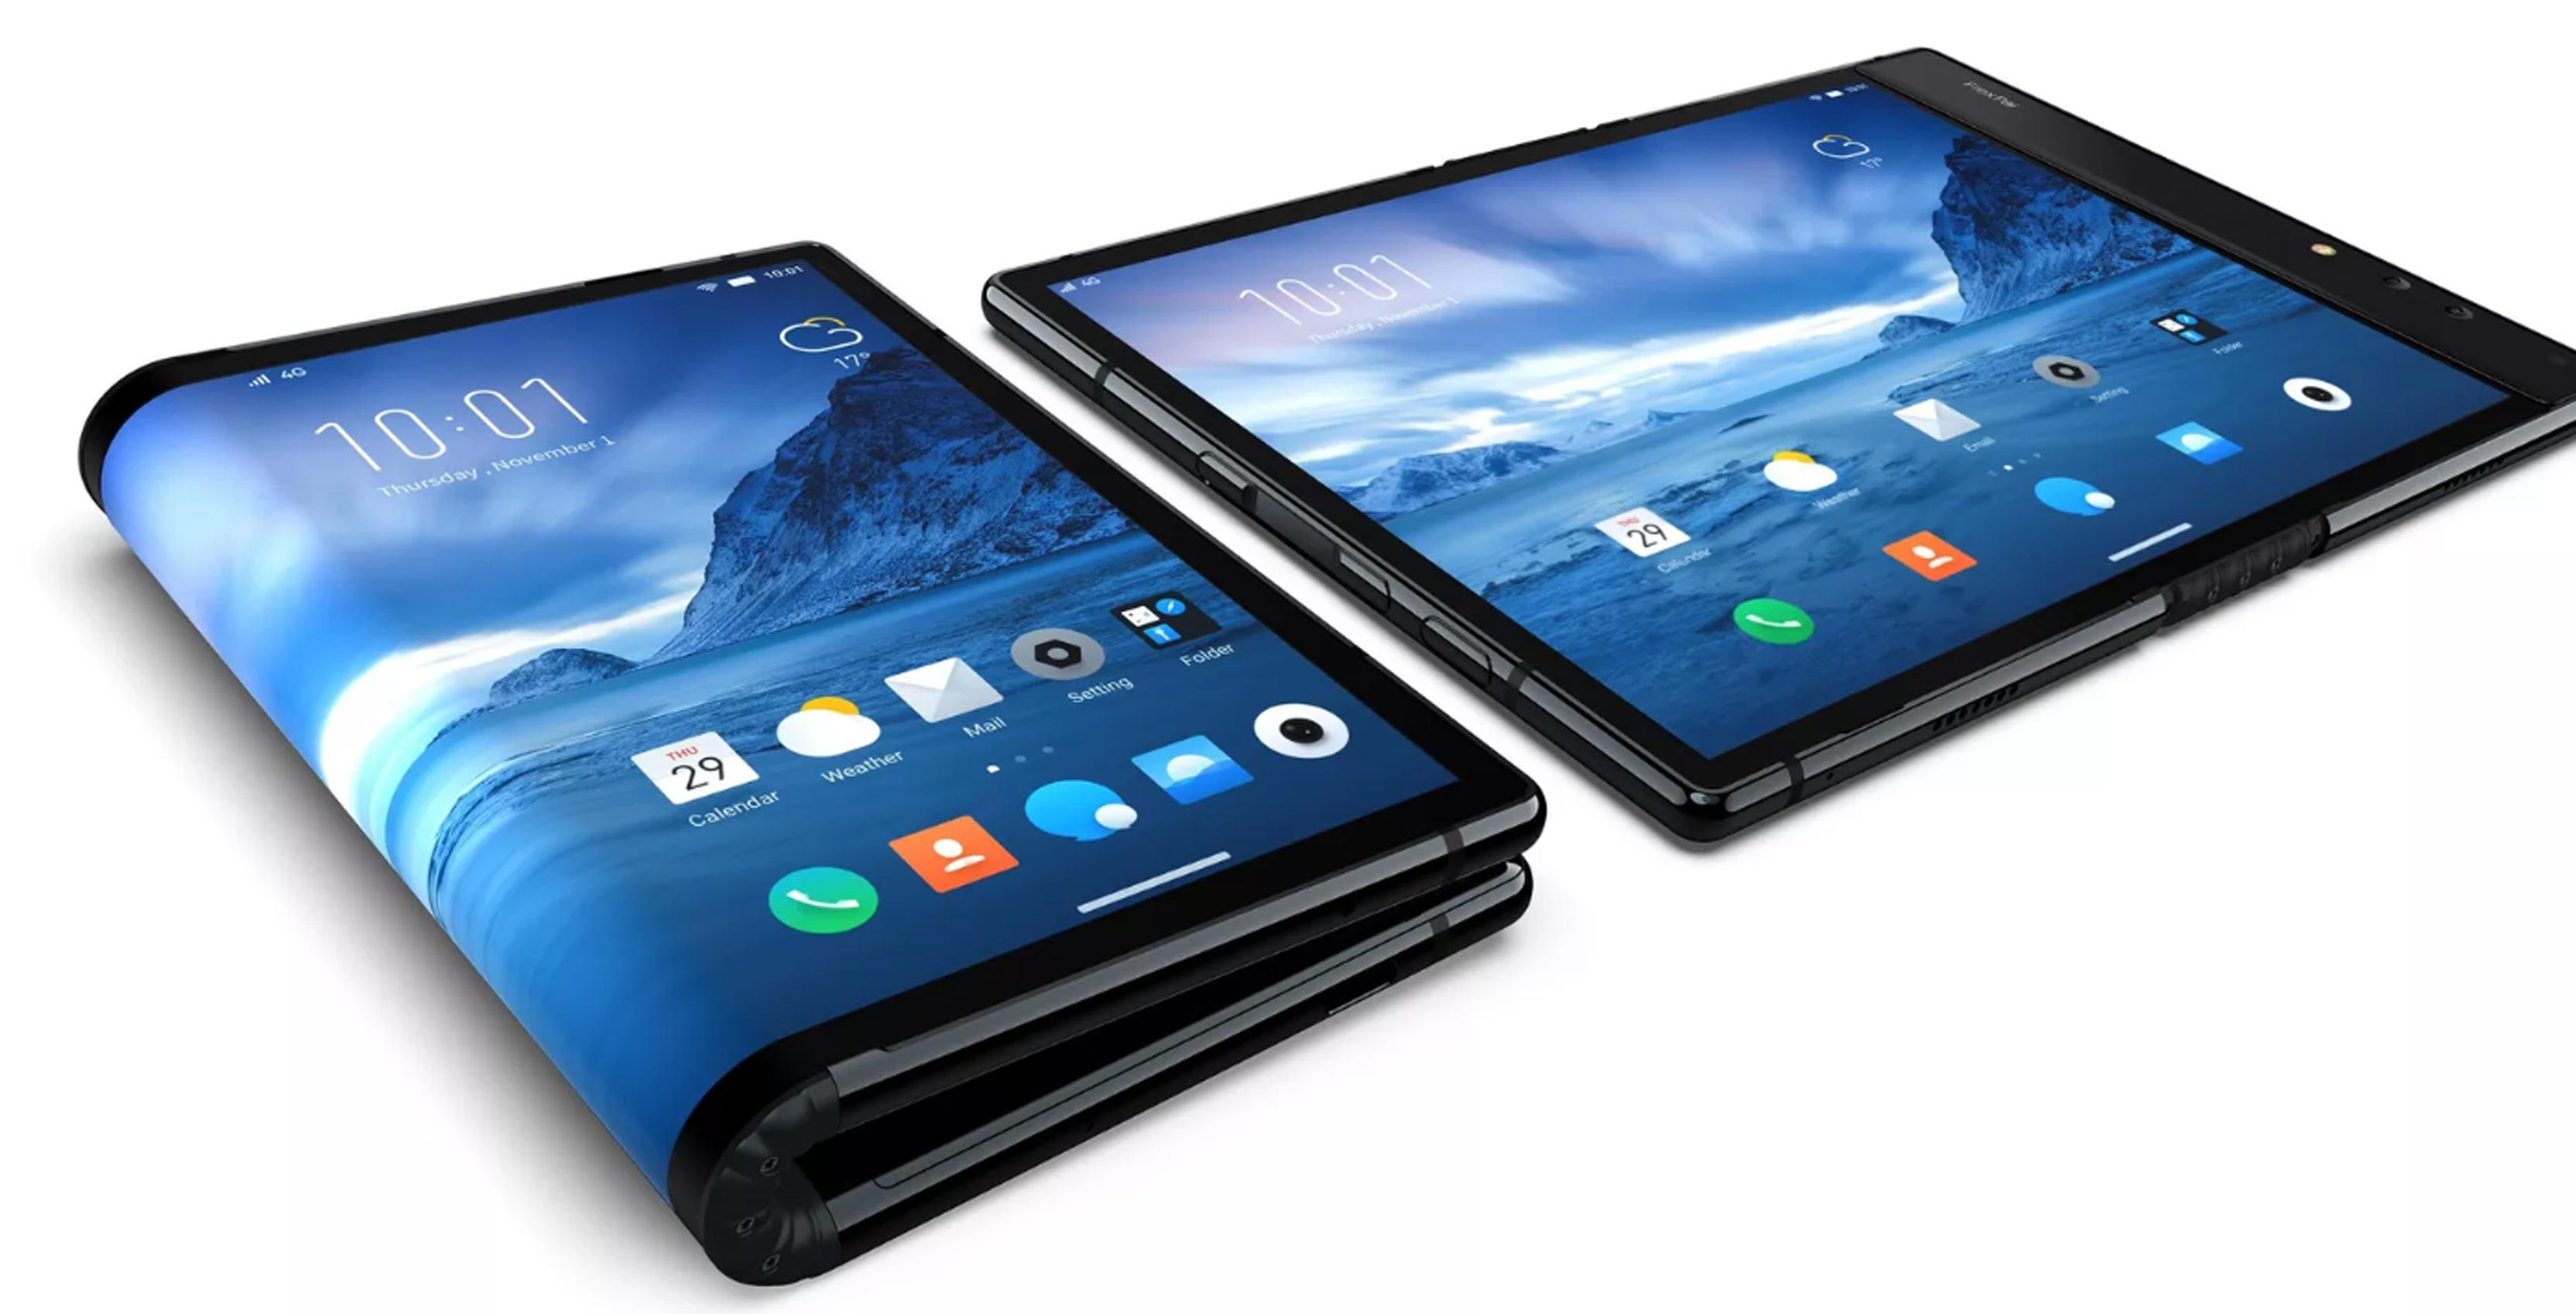 The foldable FlexPai smartphone